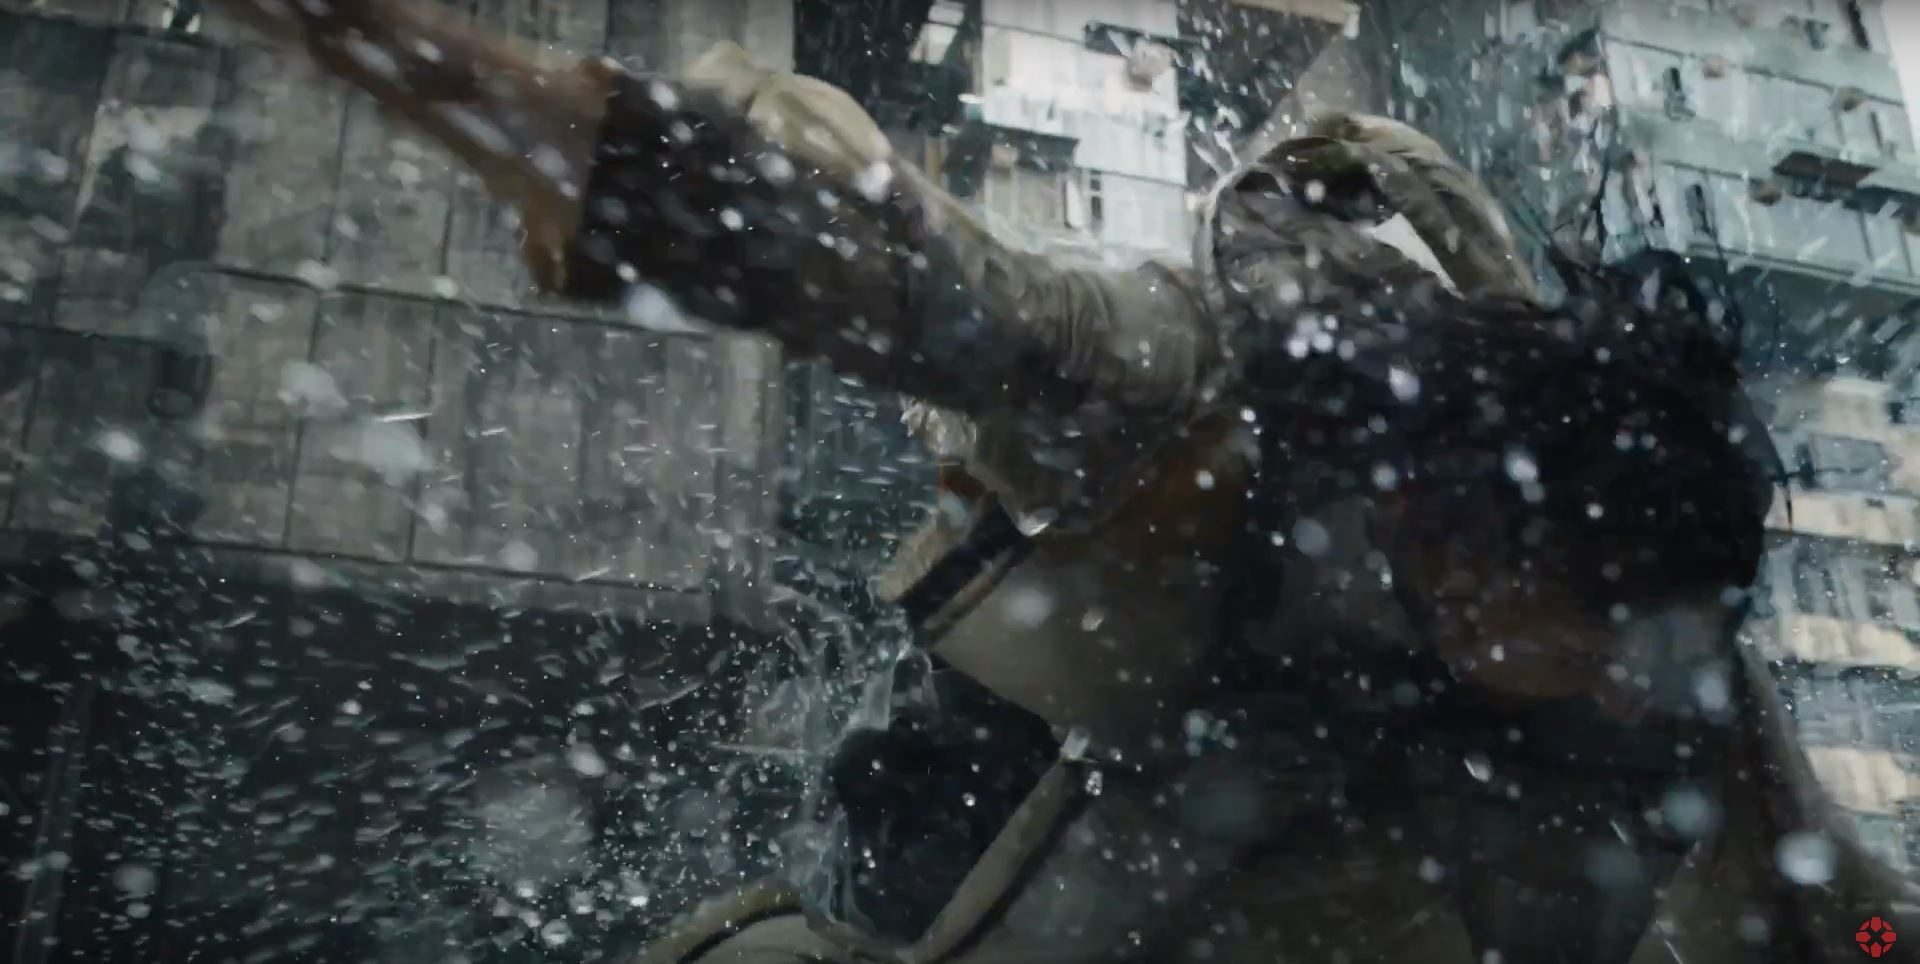 Villain gets sucker punched - Ghost In The Shell